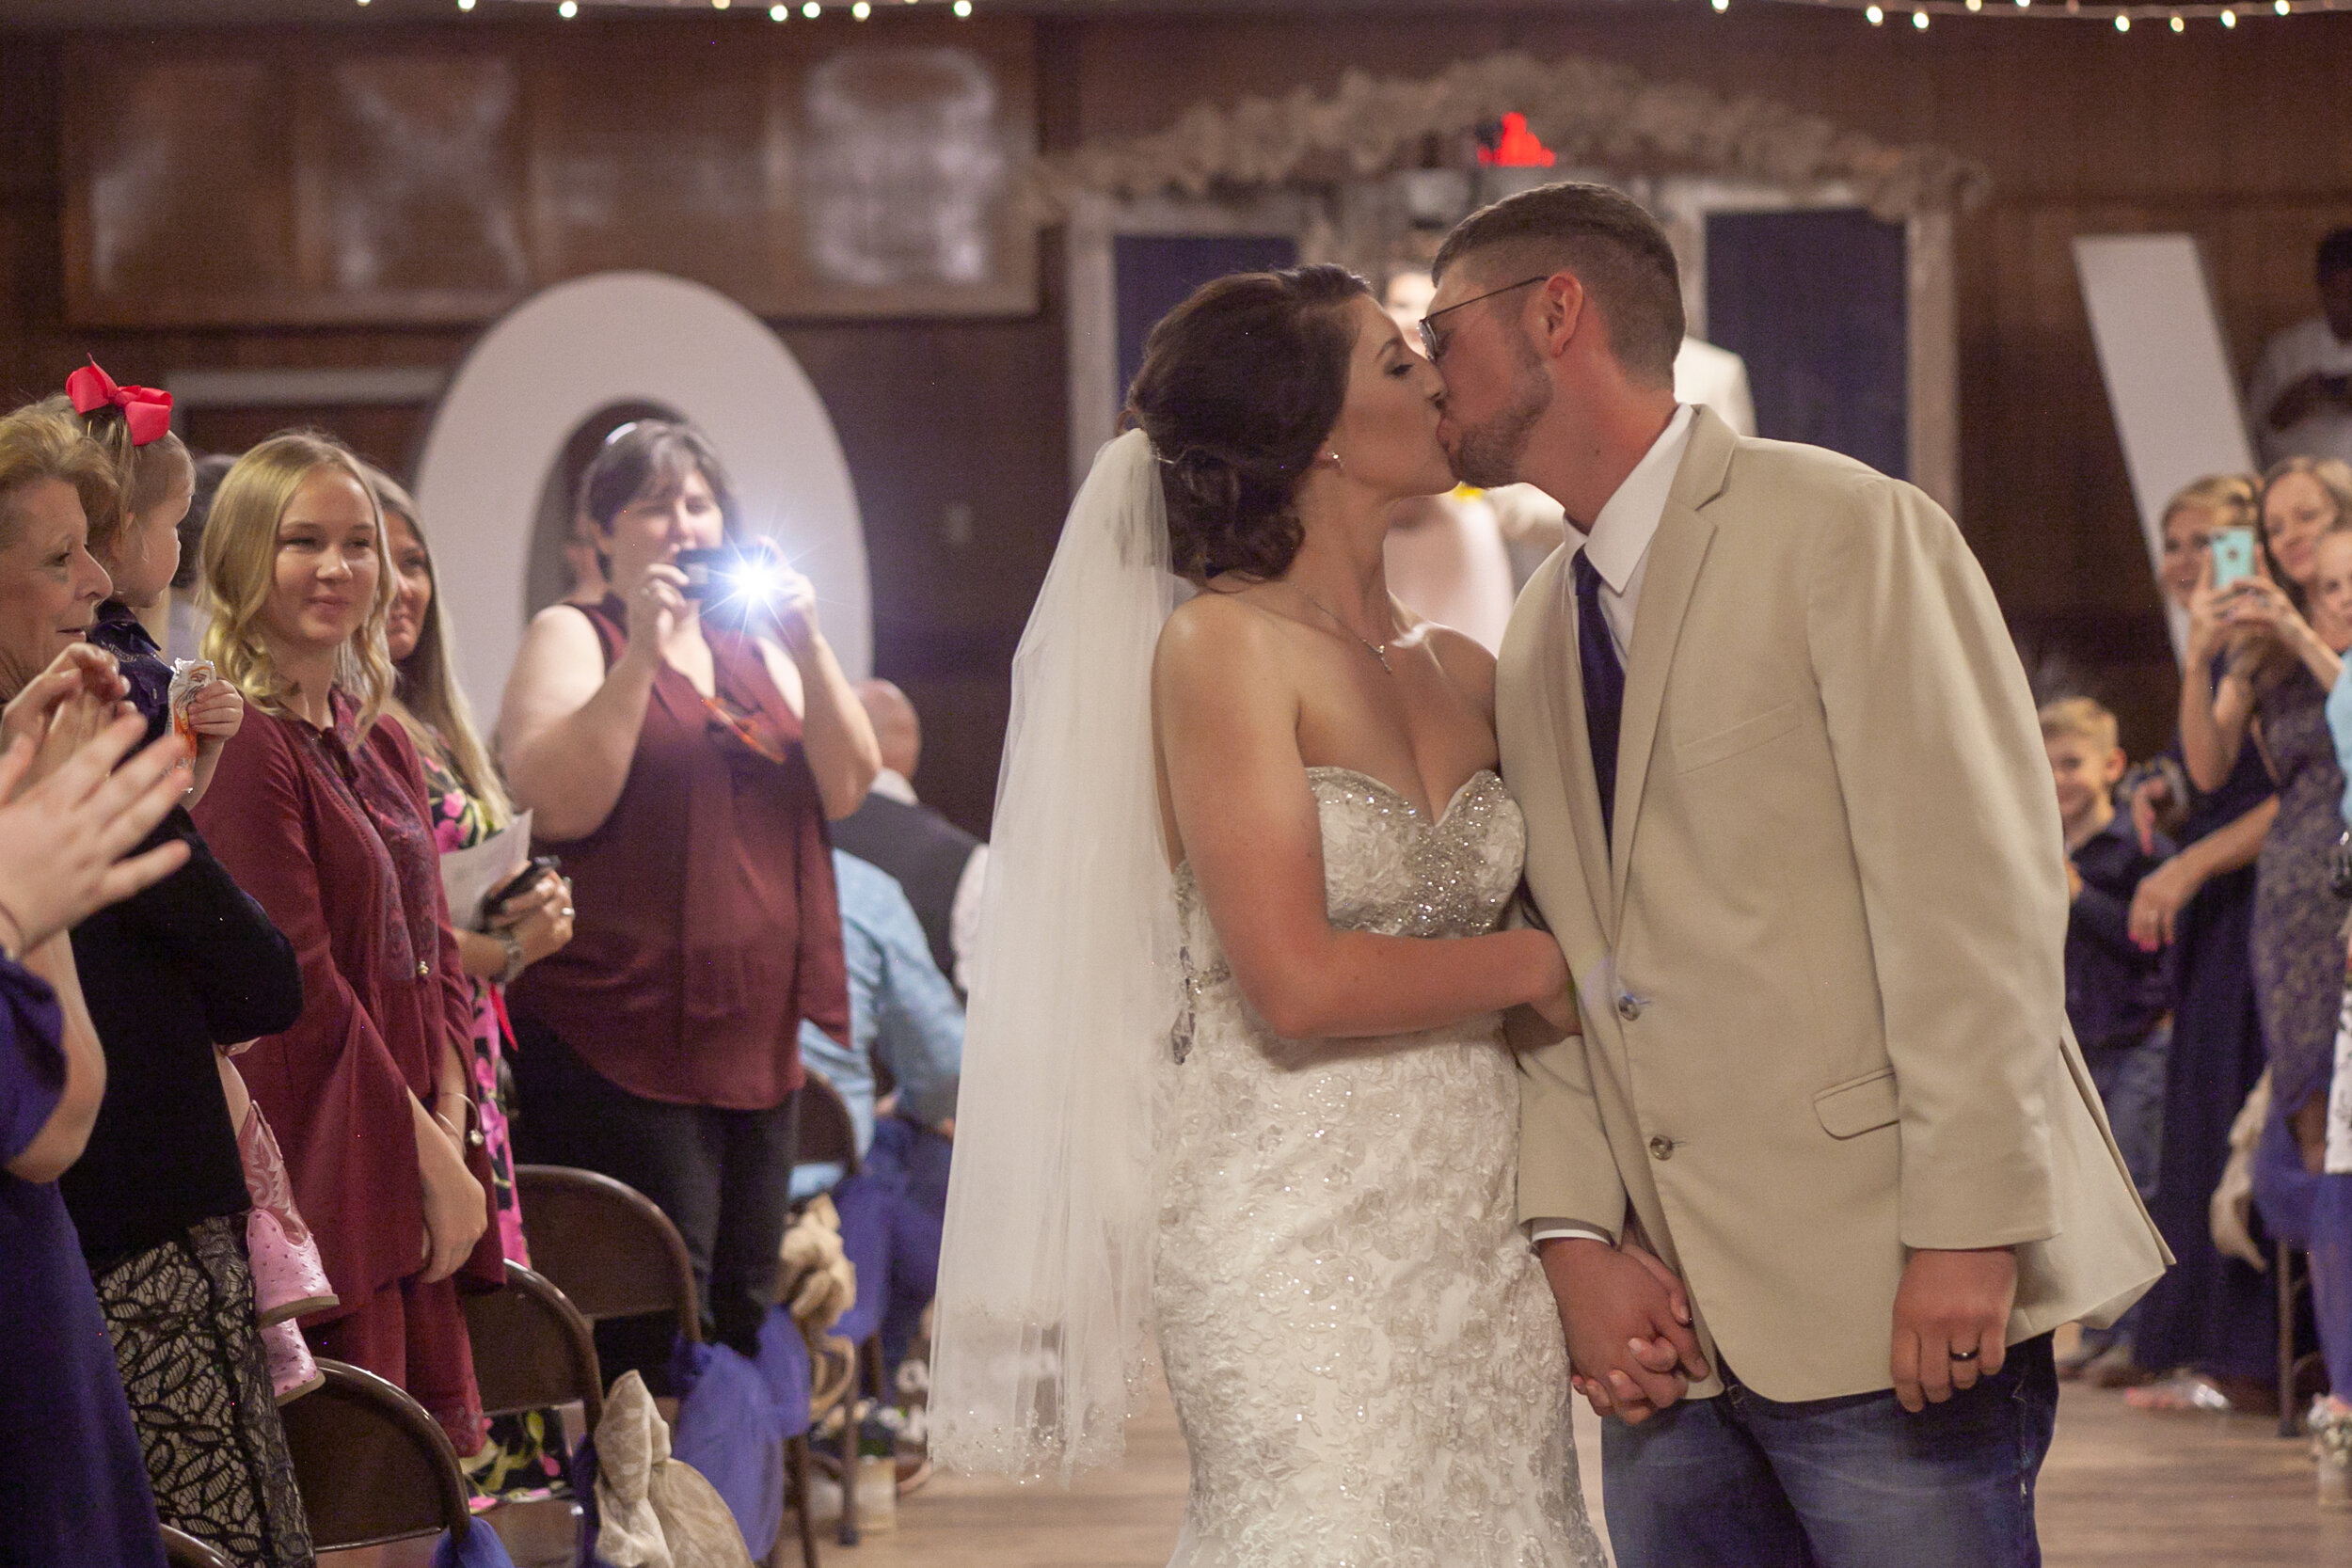 The Wedding ofMr.& Mrs. - click to view and download video